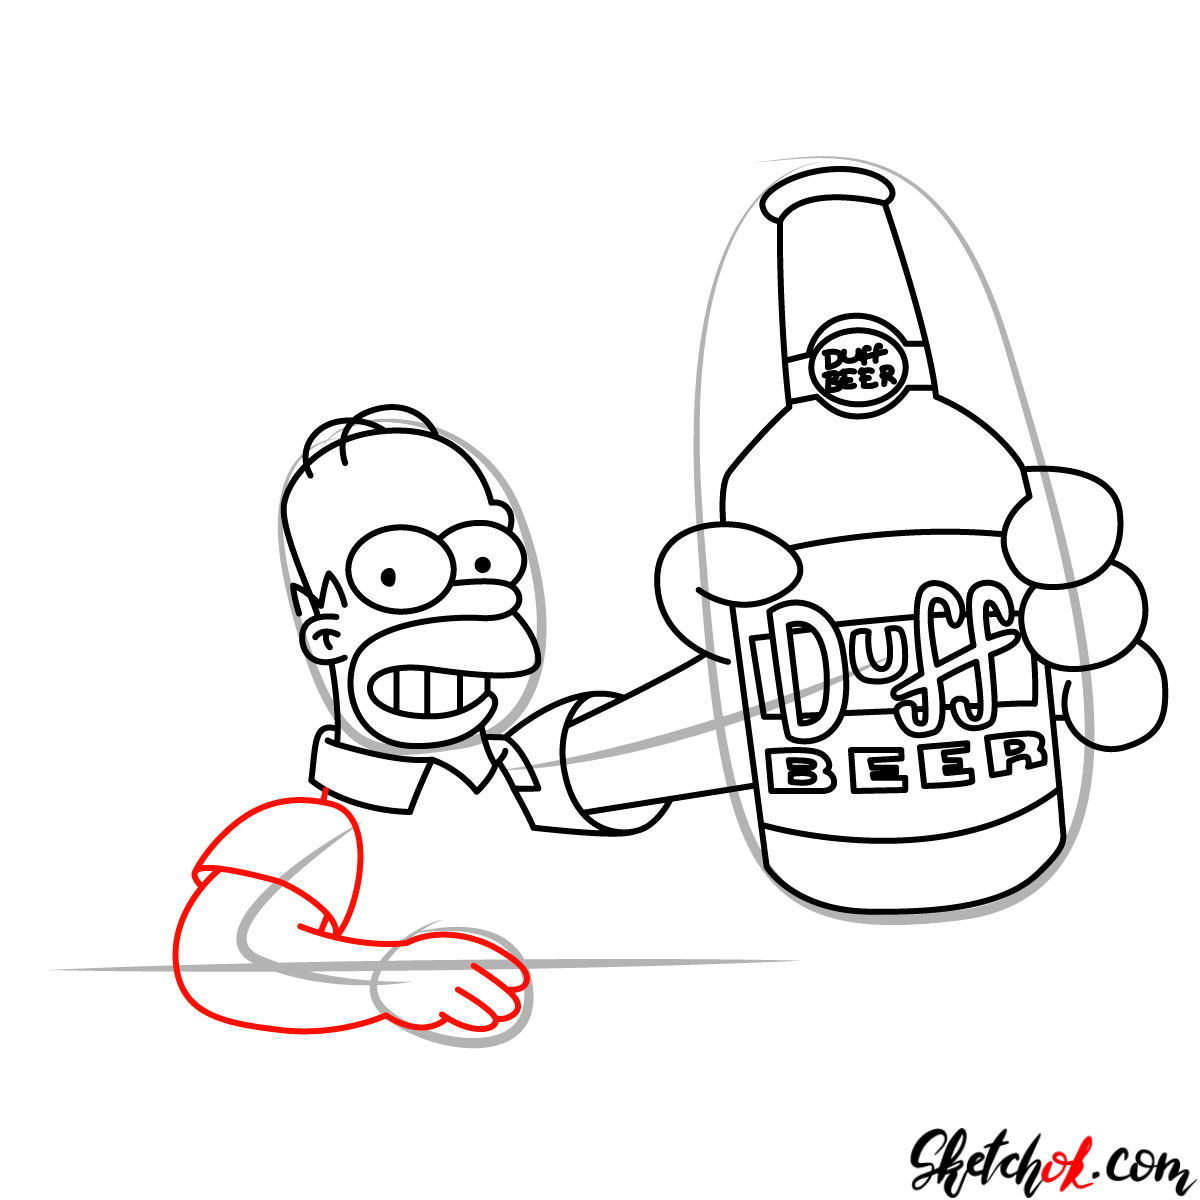 How to draw Homer with a Duff beer bottle - step 09